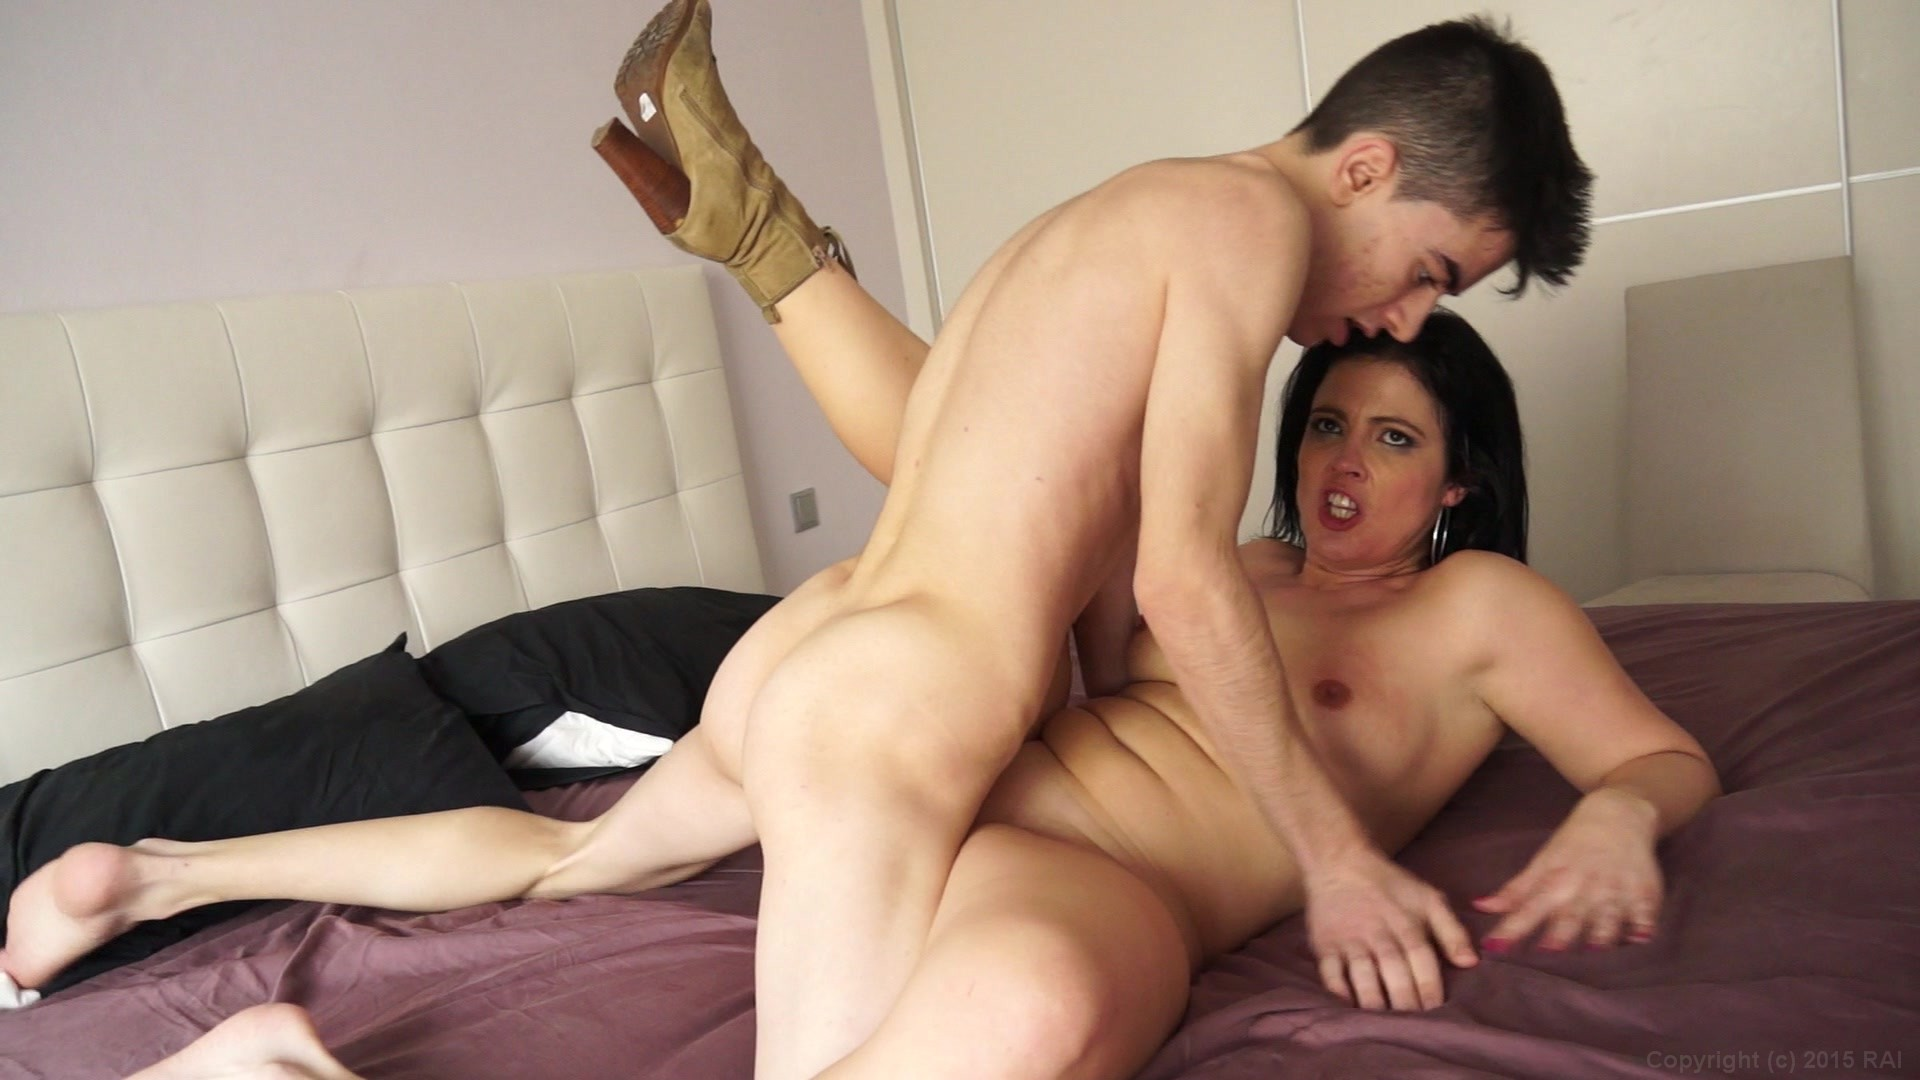 Filthy slut romi rain takes it standing up porn movies abuse